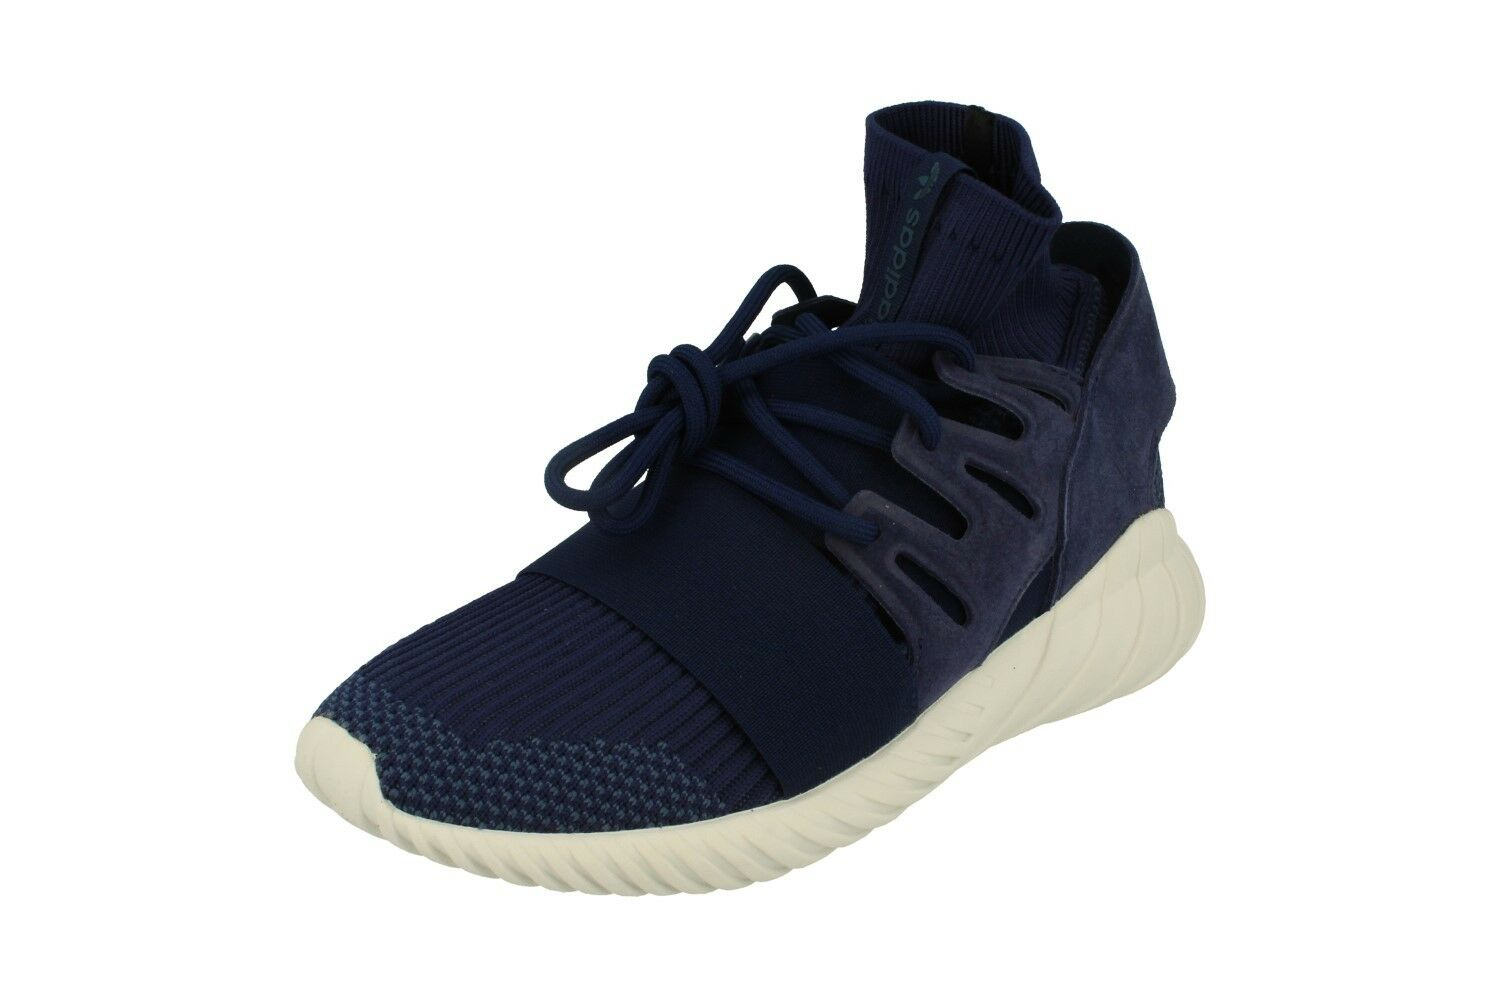 Adidas Originals Hi Tubular Doom Pk Mens Hi Originals Top Trainers Sneakers Shoes S80103 8b4345